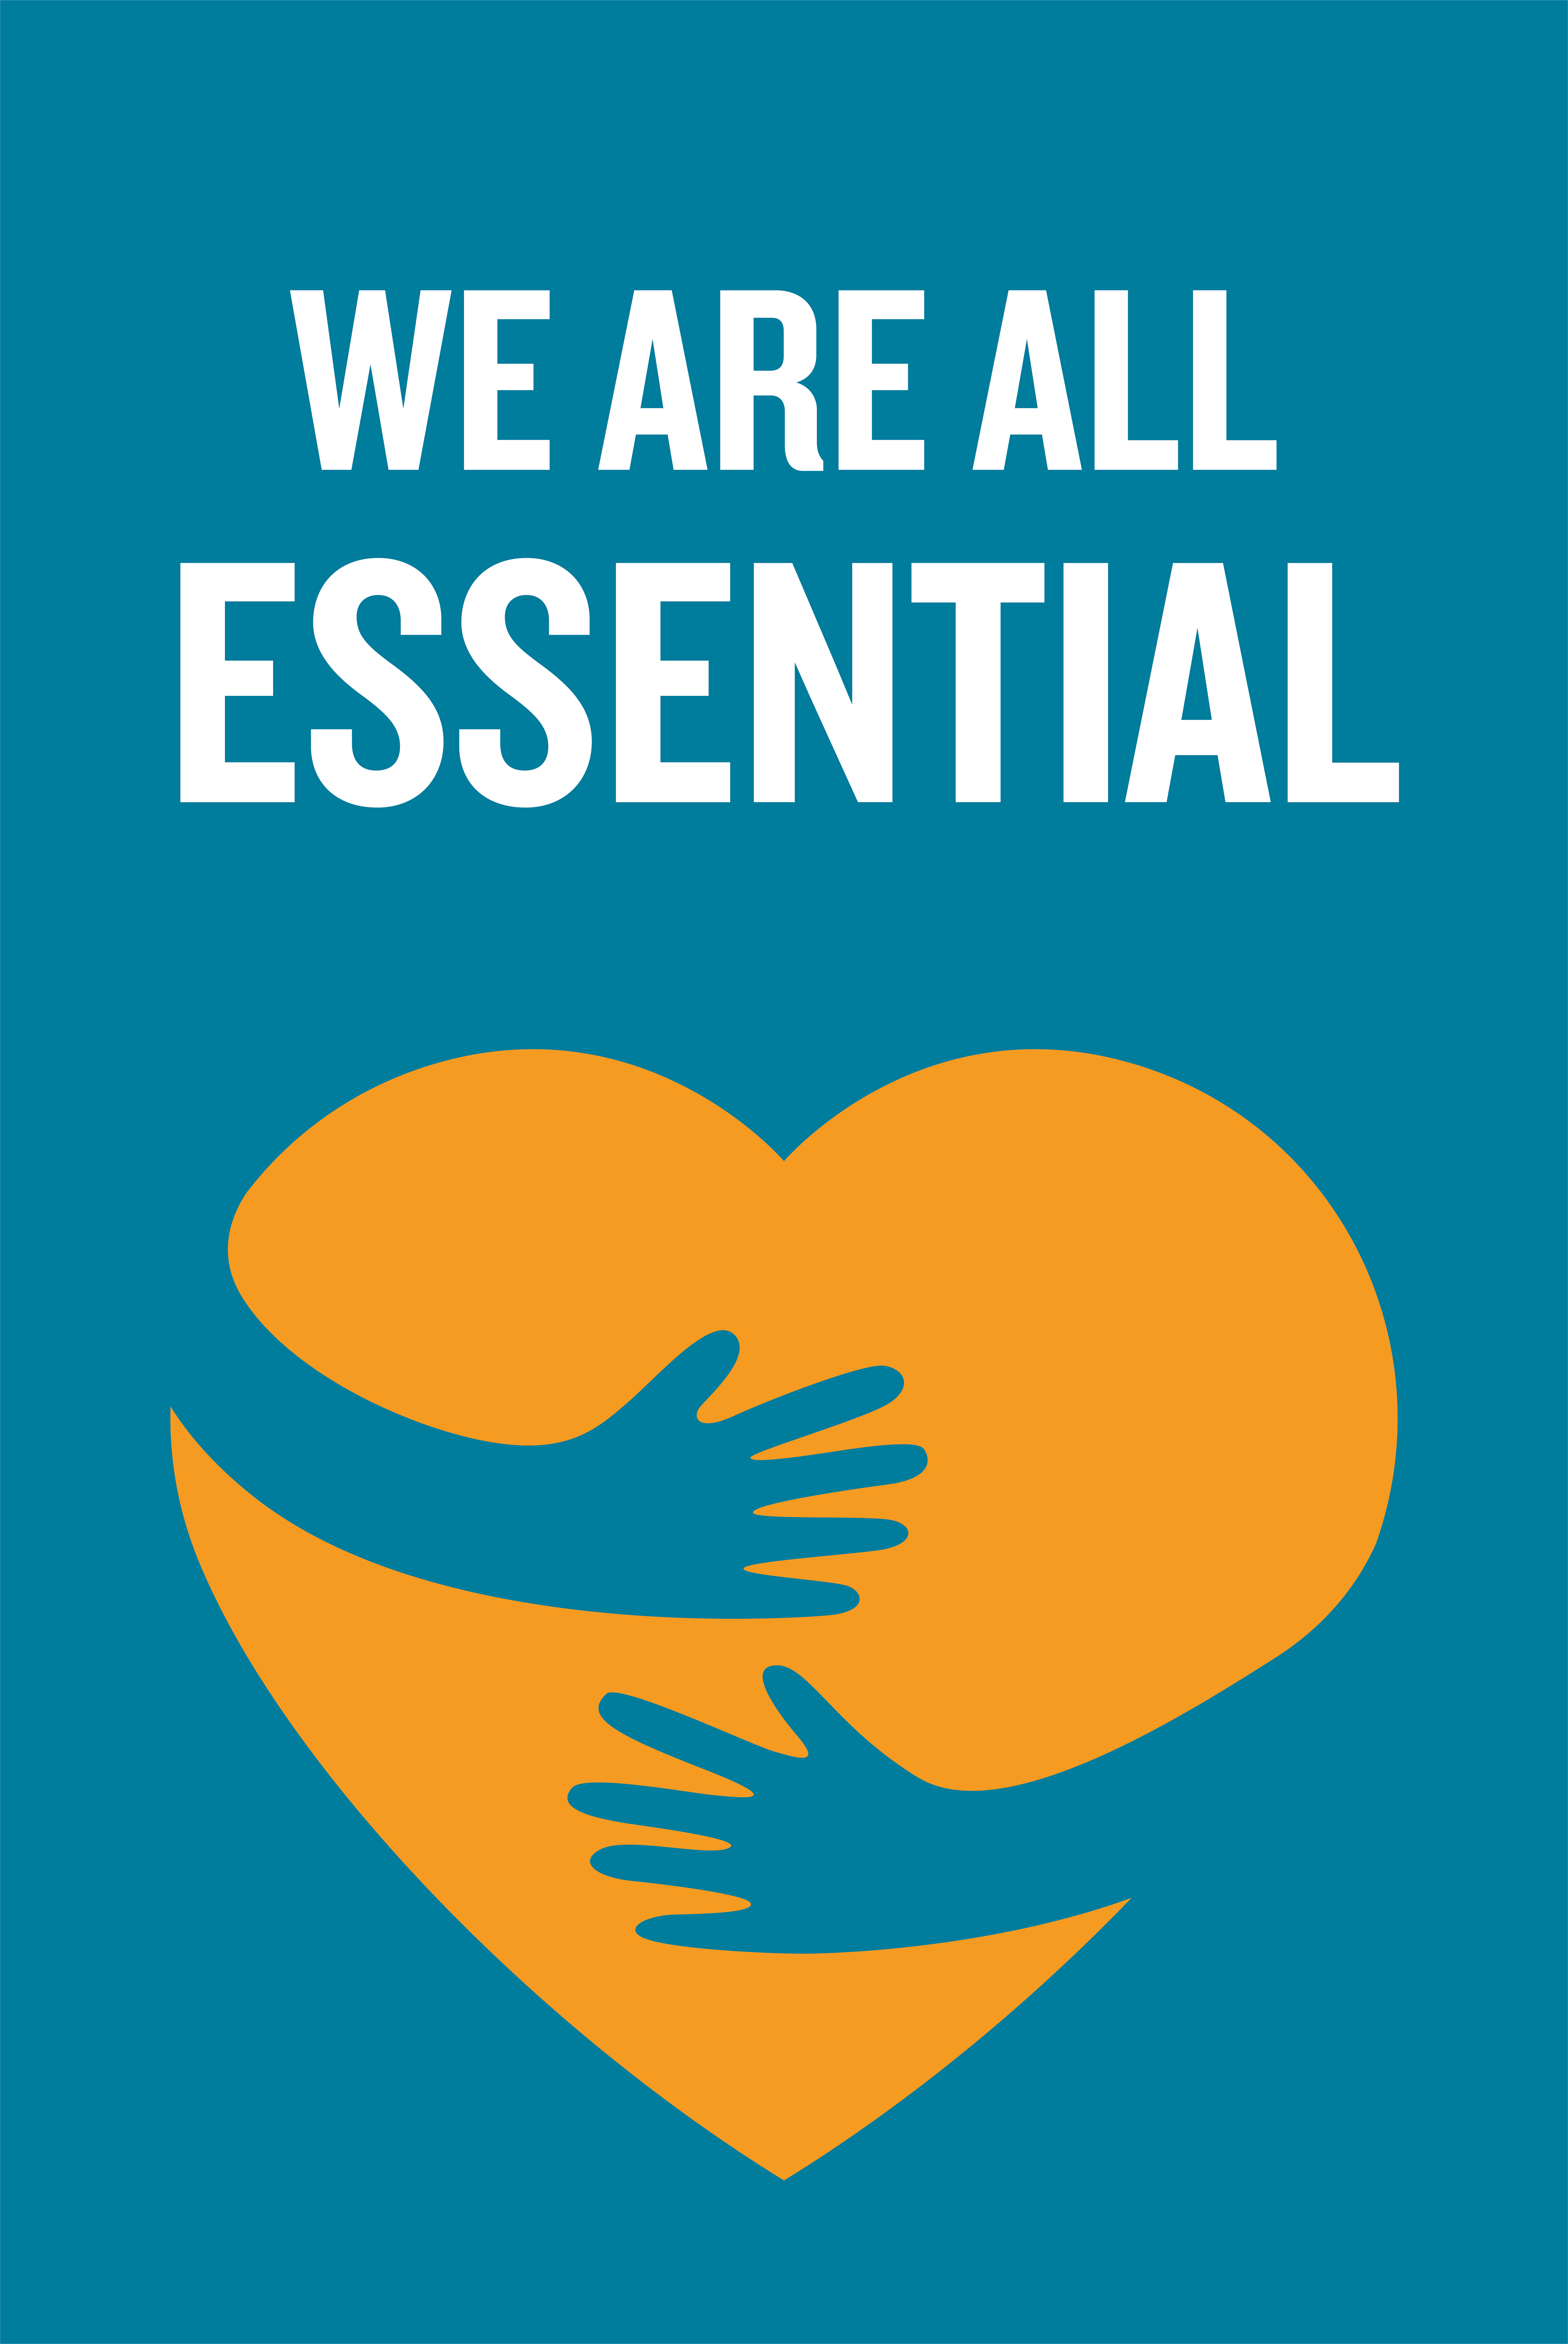 #CV981-we are all essential